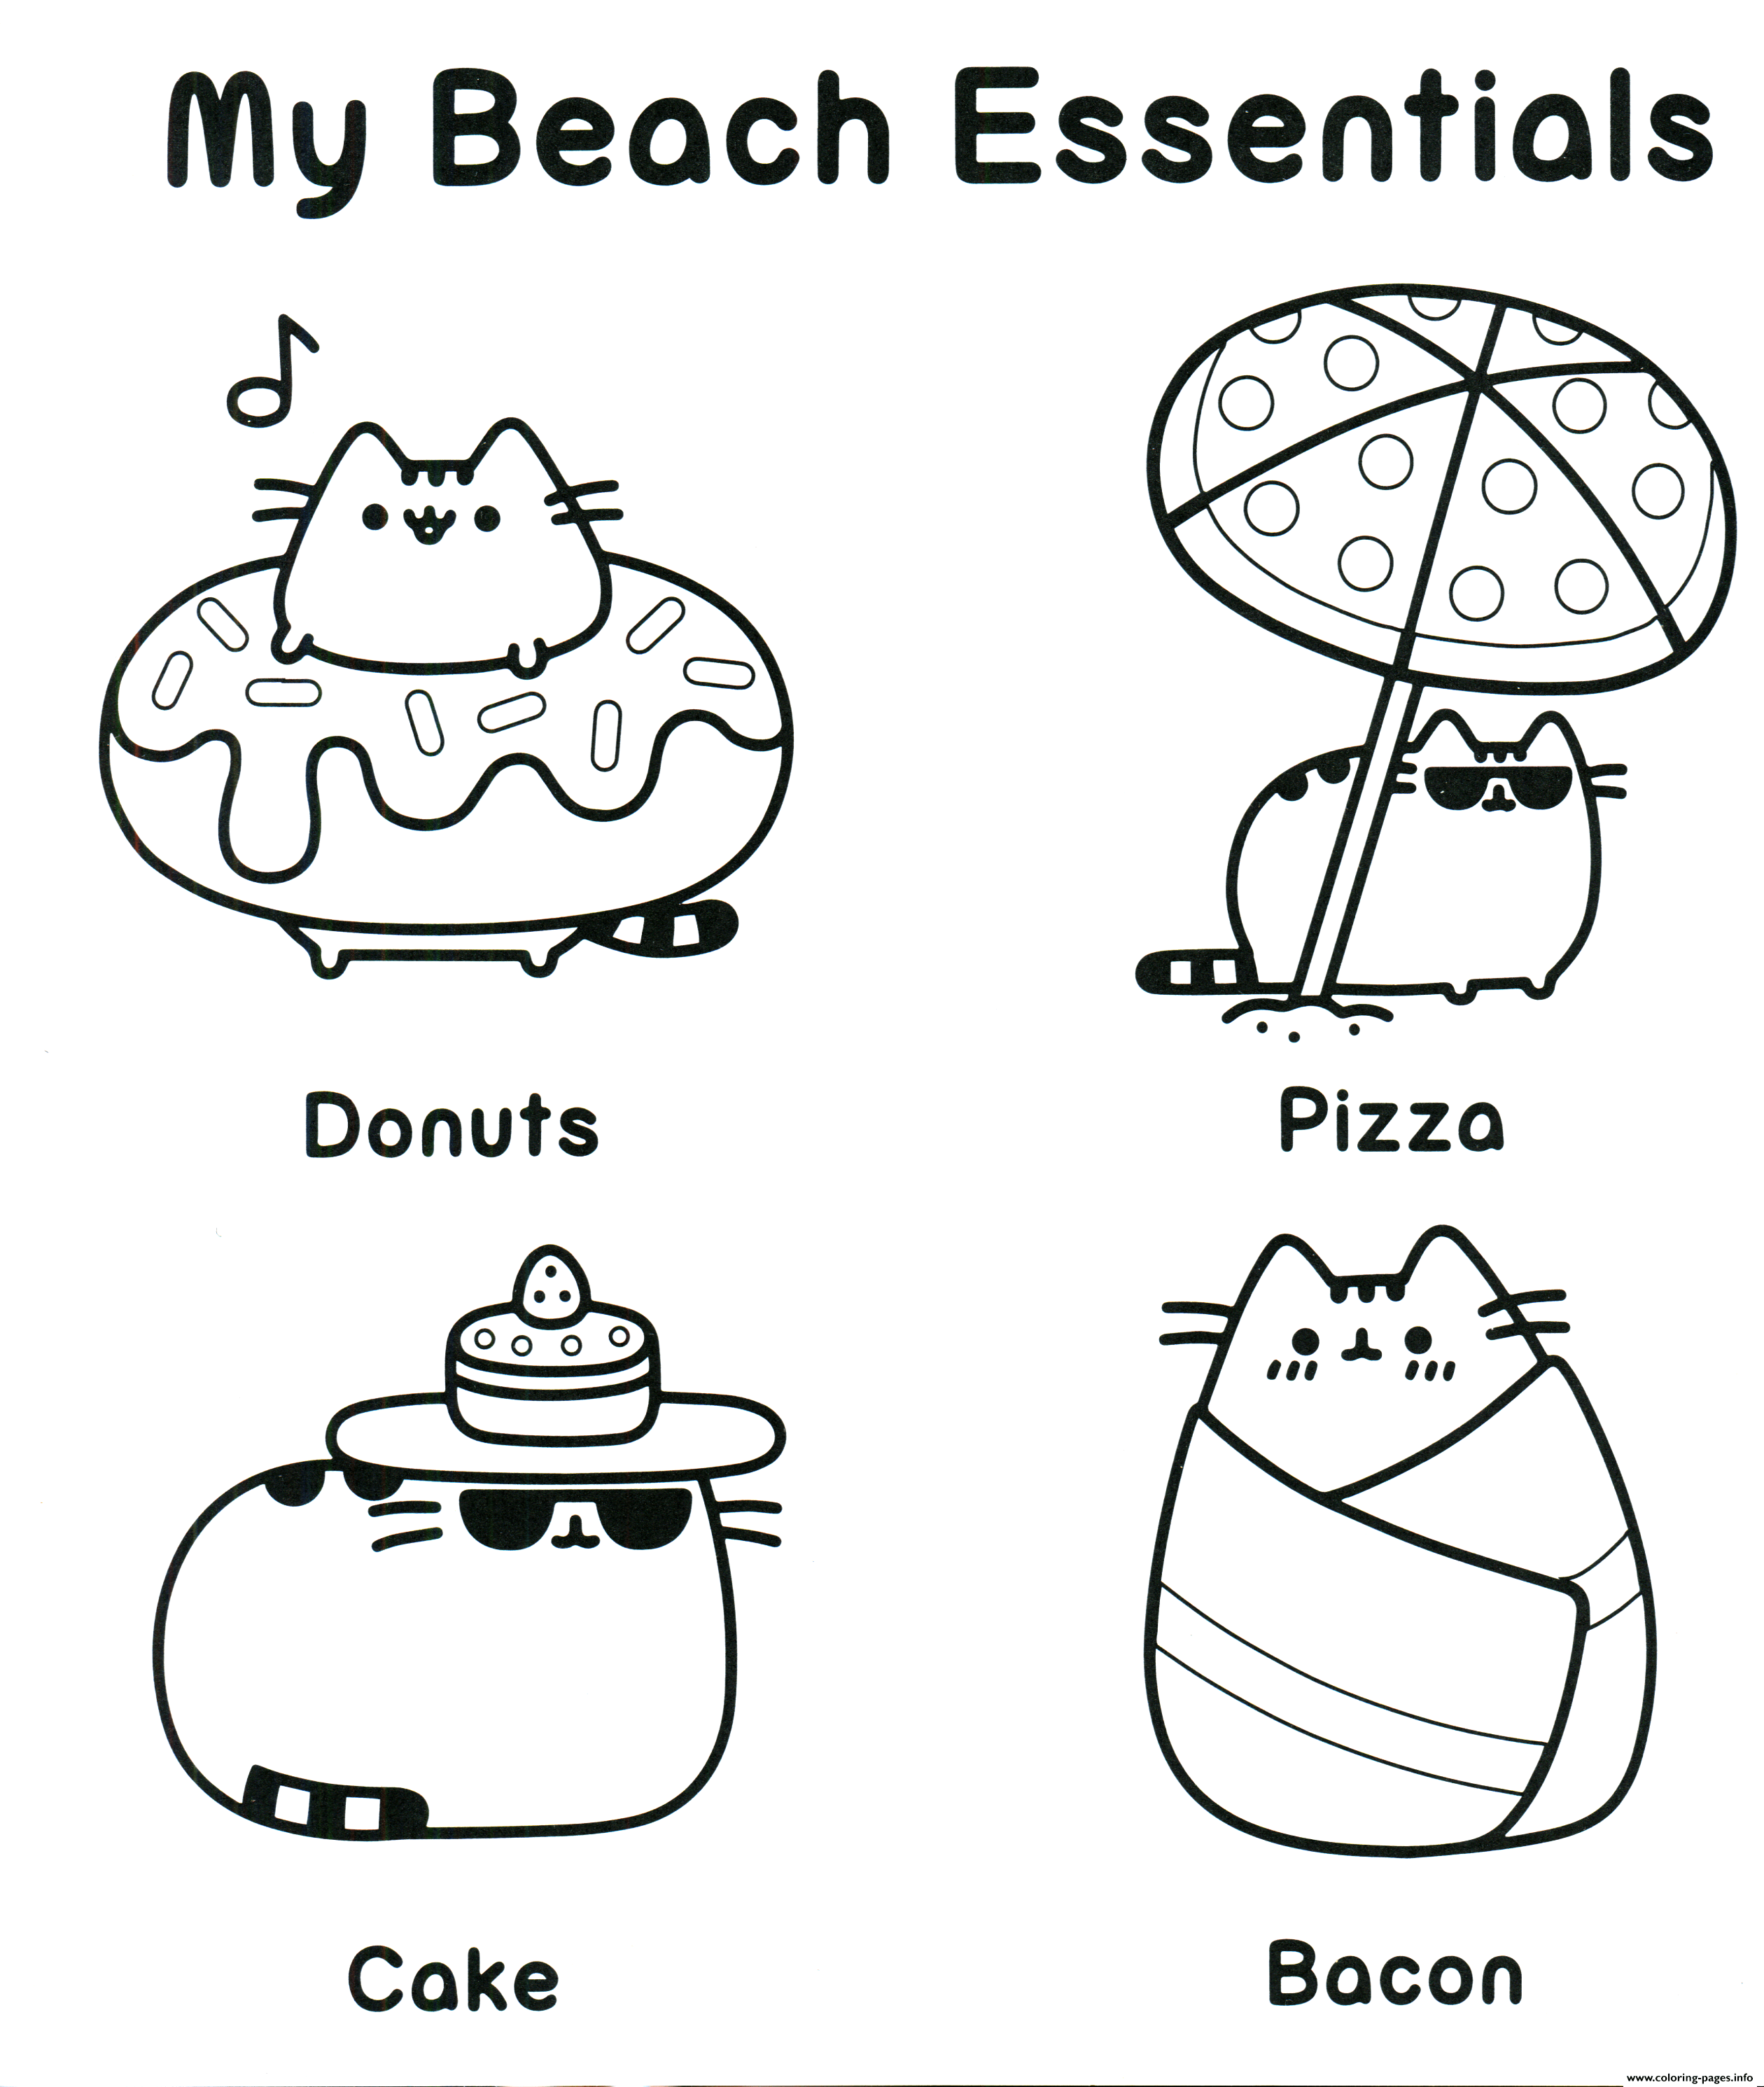 pusheen coloring pages to print Pusheen My Beach Essentials Coloring Pages Printable pusheen coloring pages to print